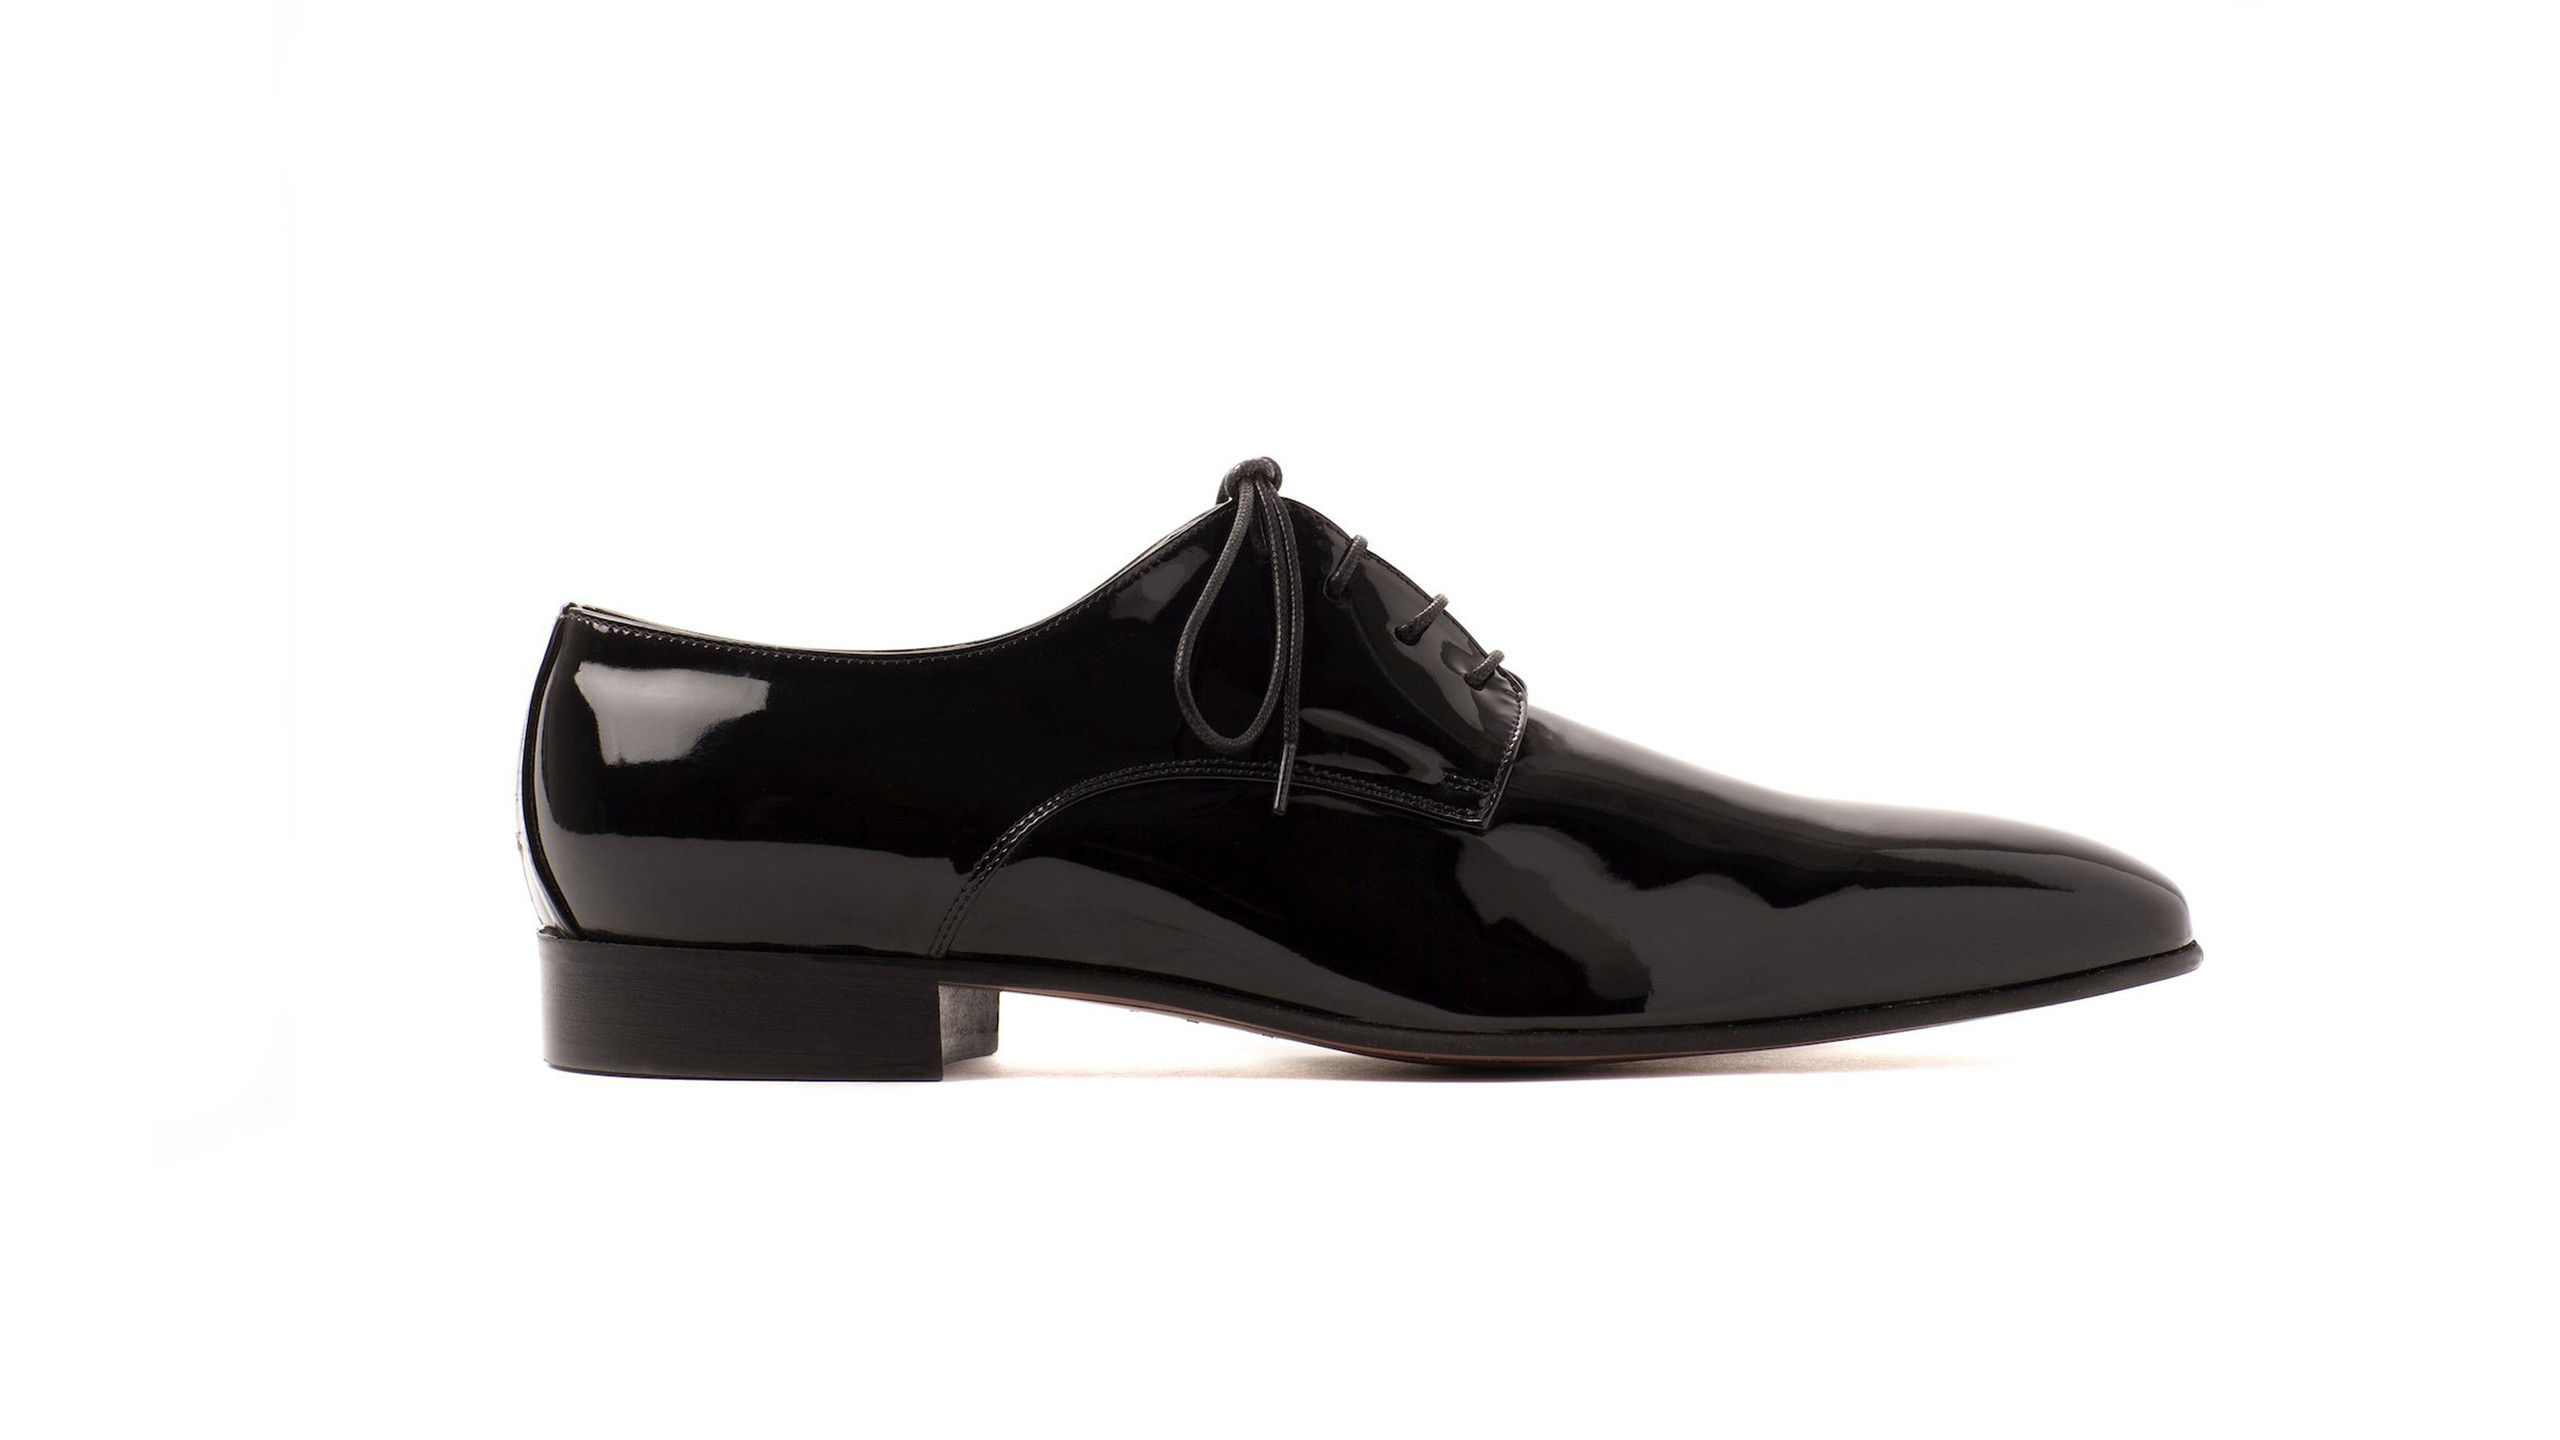 MAXWELL in Black Patent-Effect